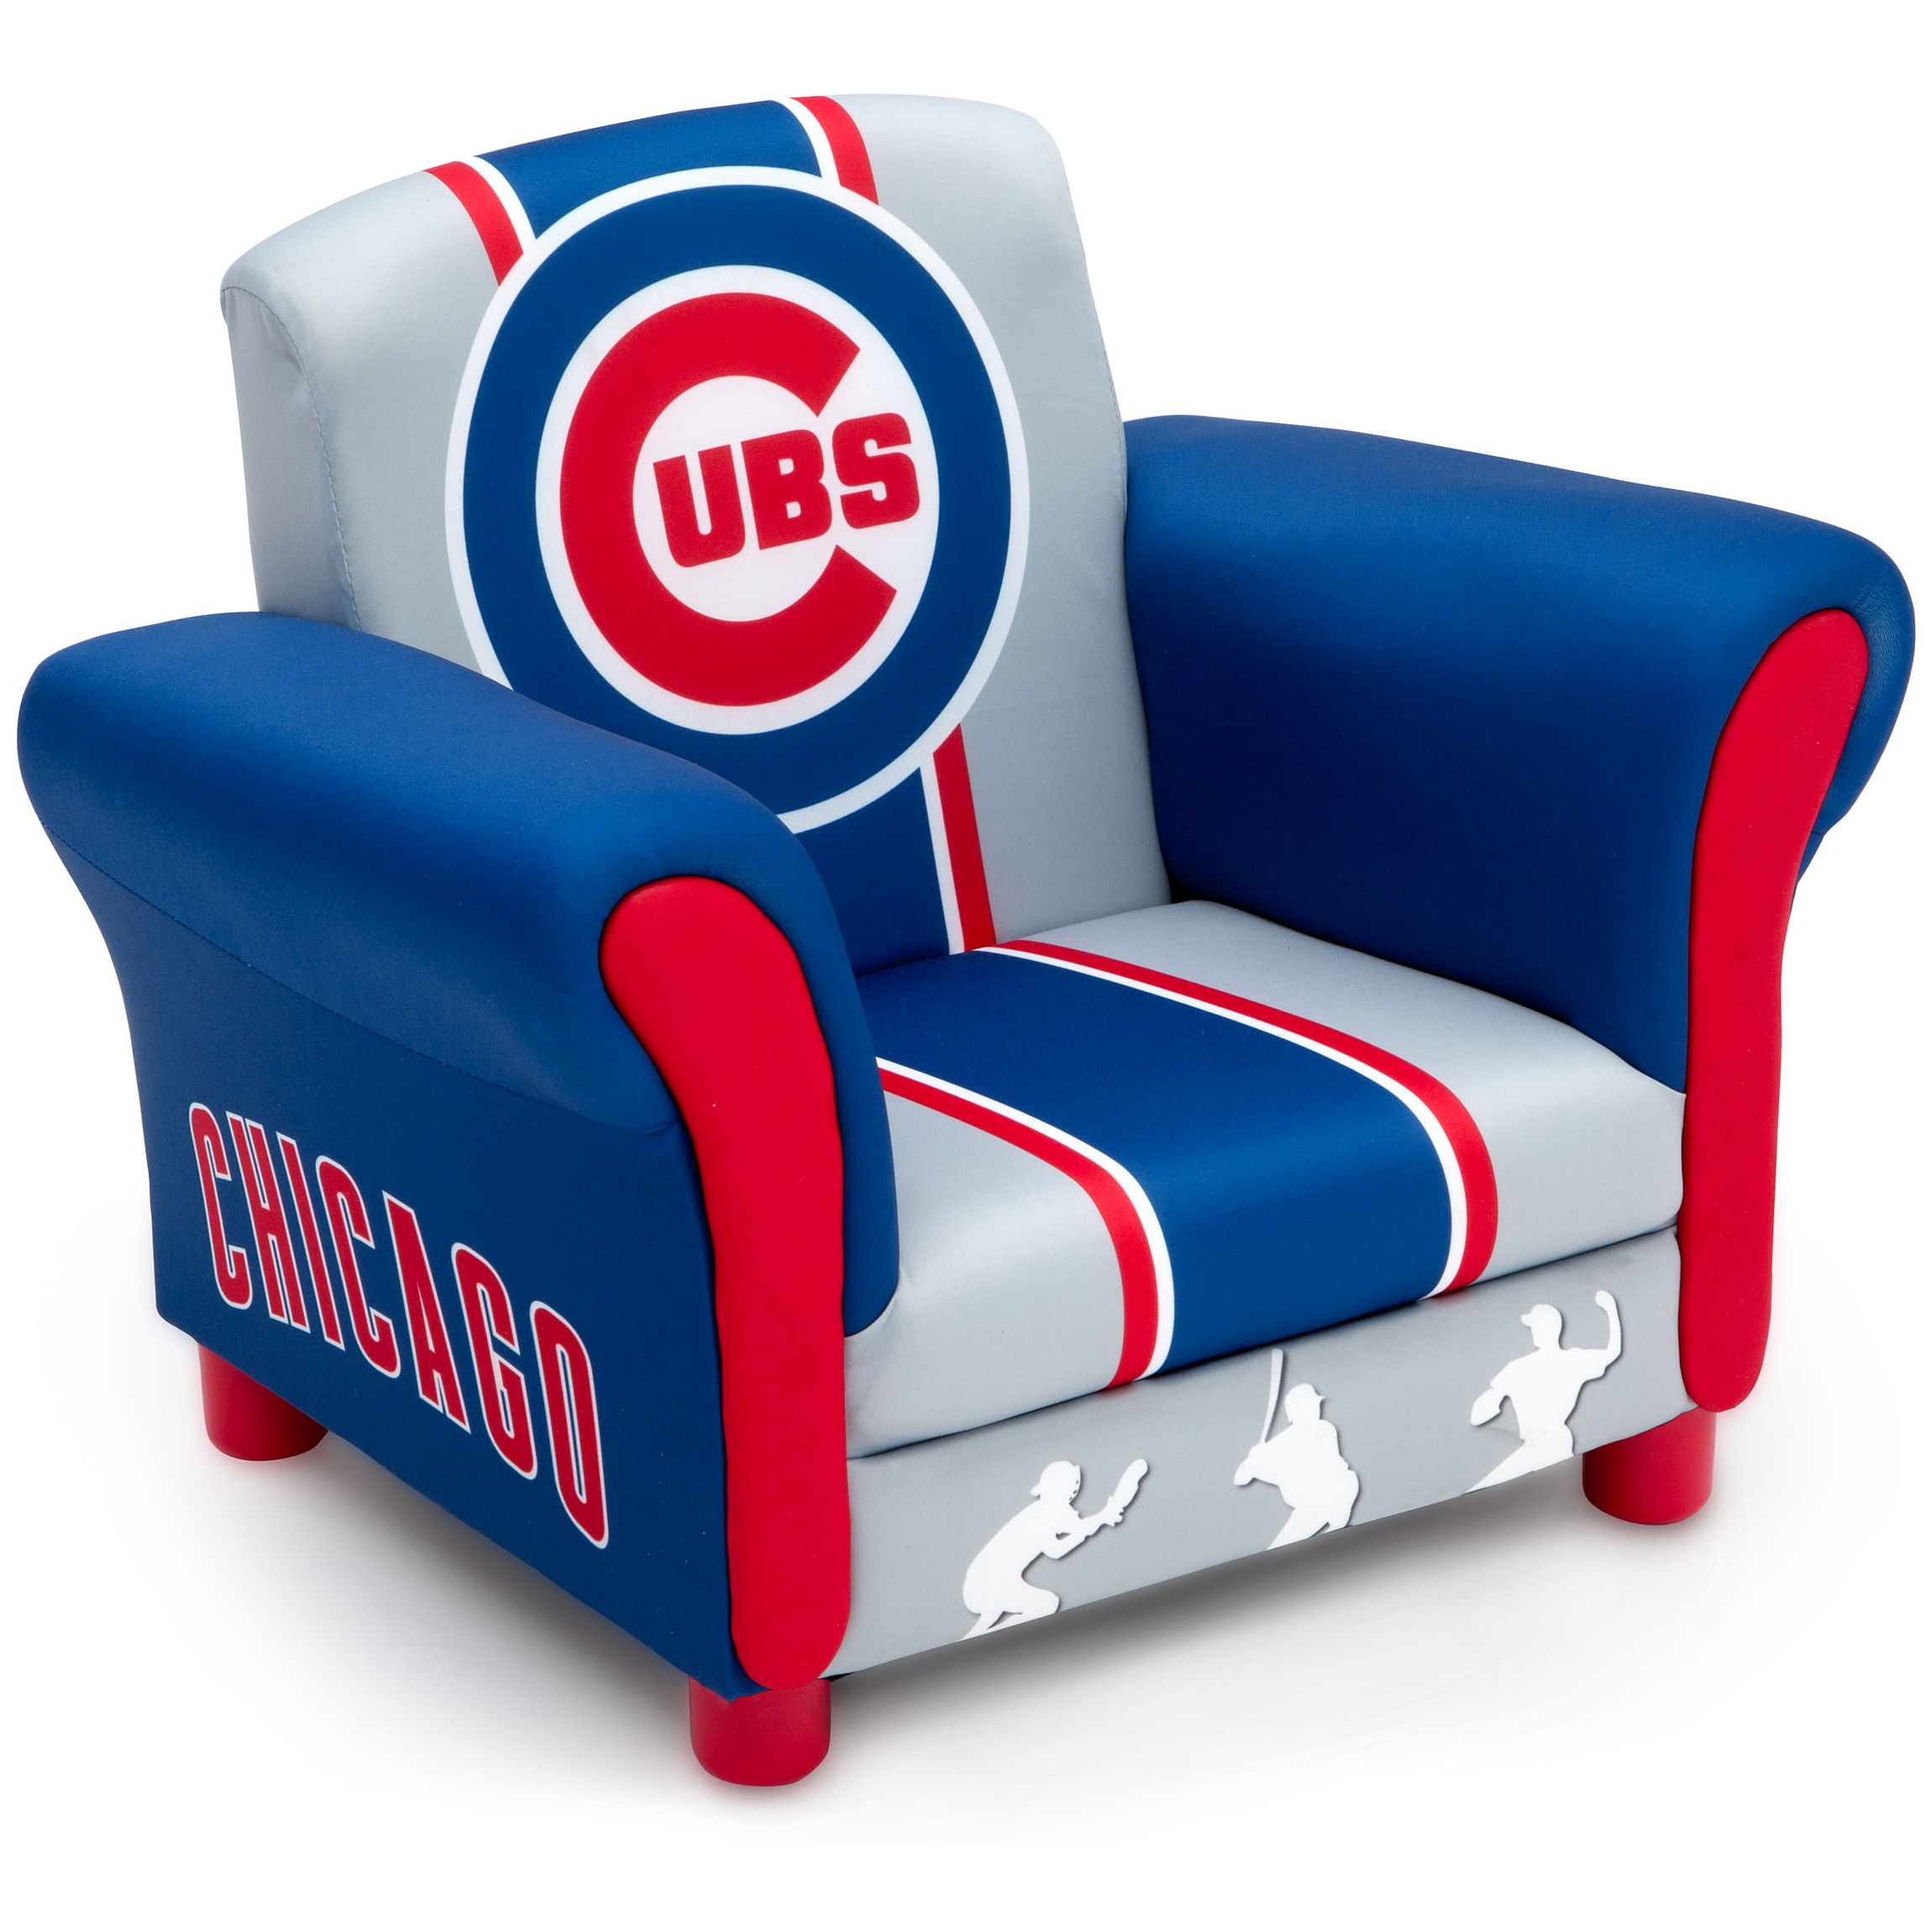 Chicago Cubs Kids Upholstered Chair Walmart Com